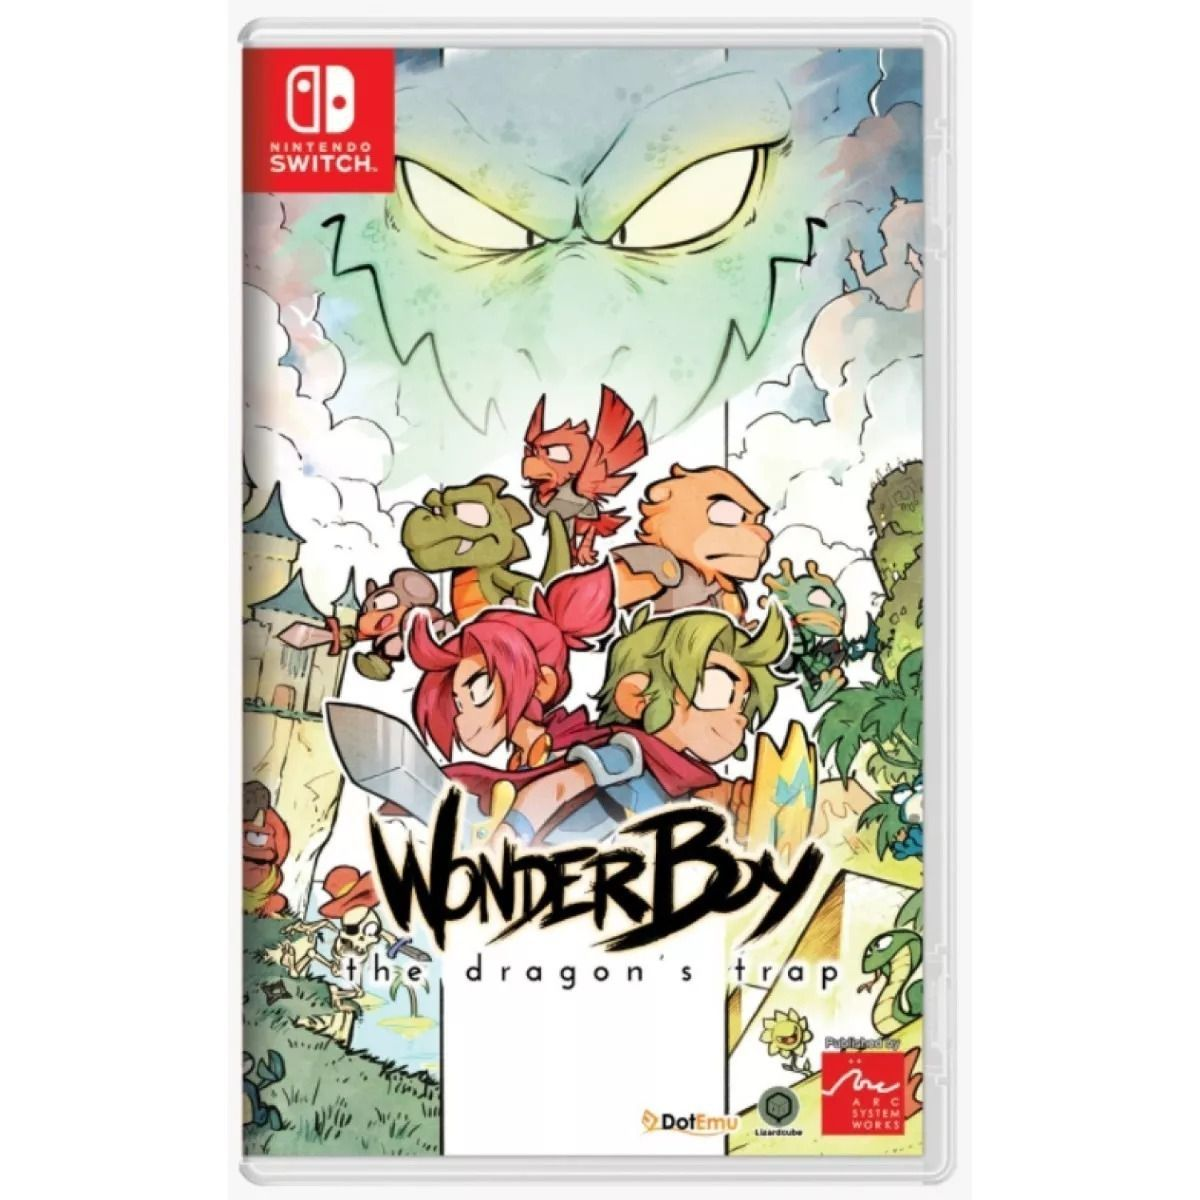 Wonder Boy: The Dragon's Trap - Nintendo Switch